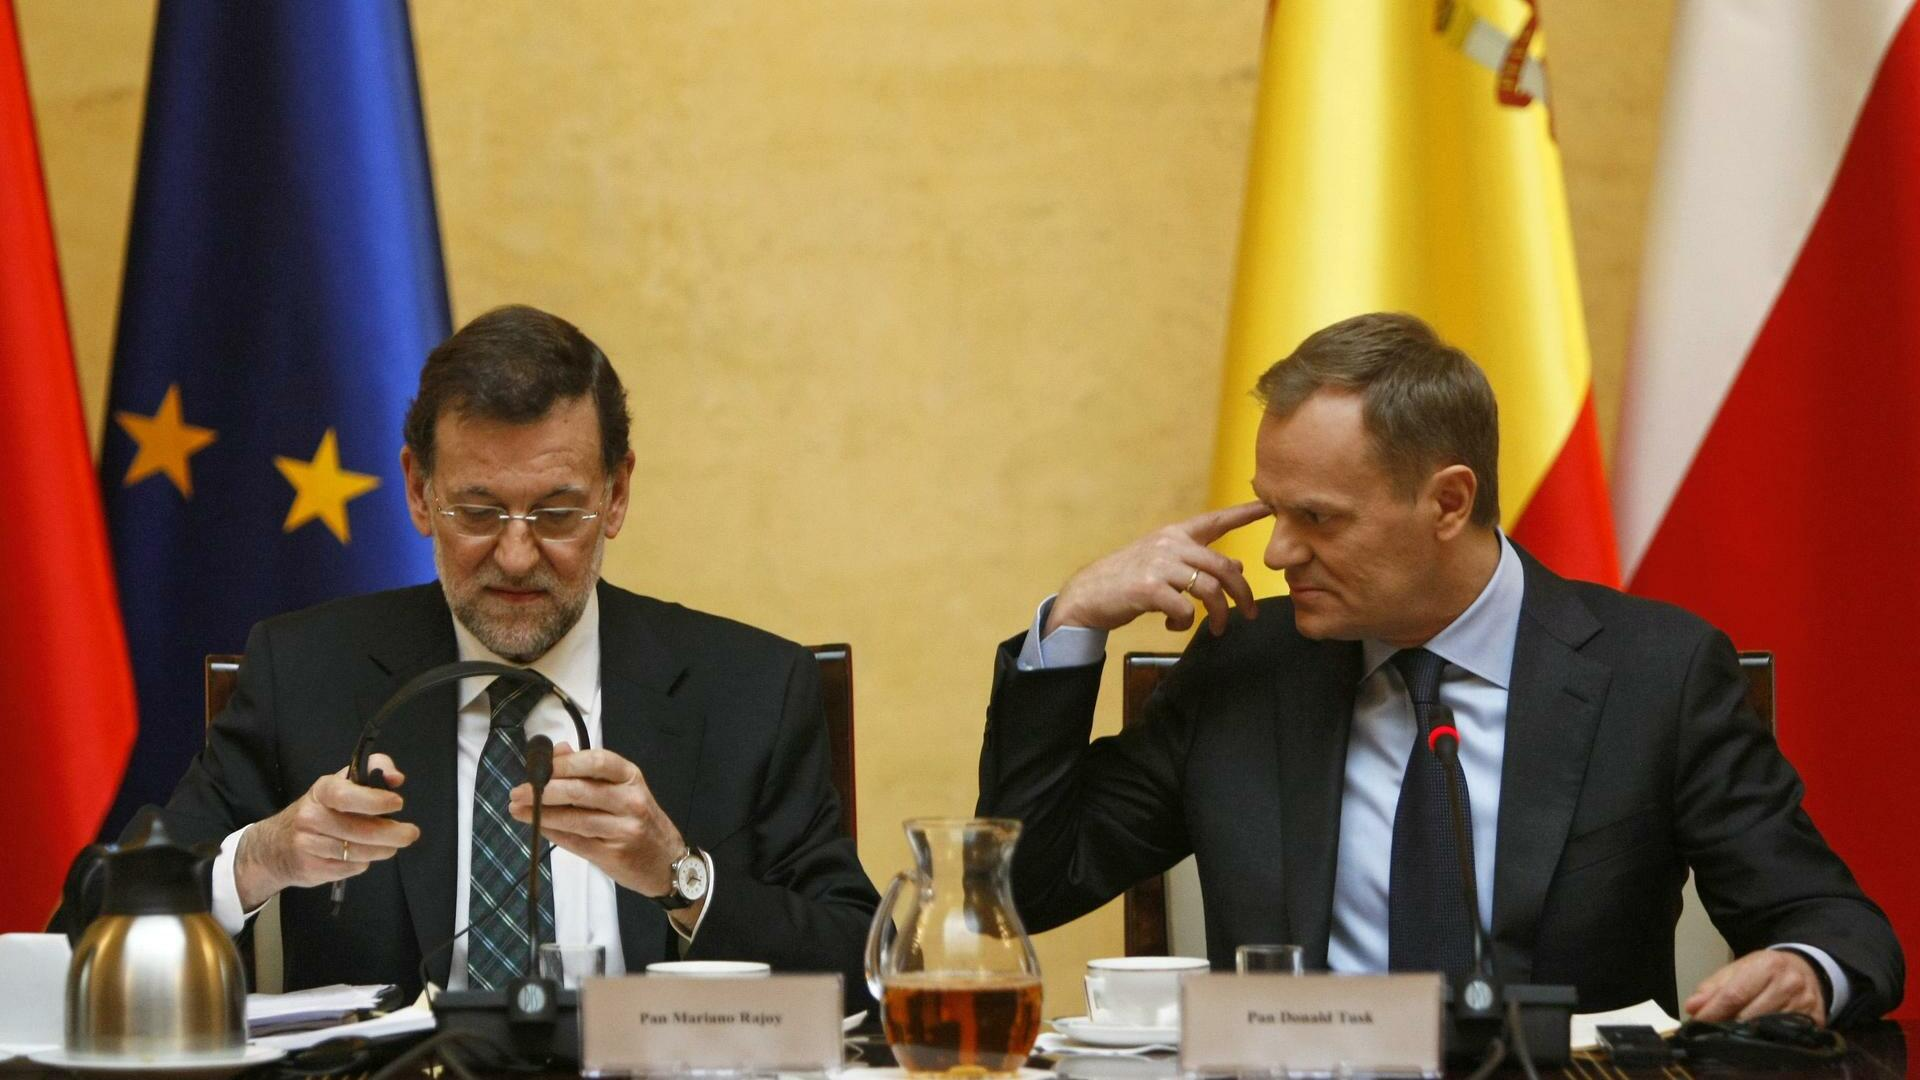 Poland's Prime Minister Donald Tusk (R) and his Spanish counterpart Mariano Rajoy Quelle: REUTERS